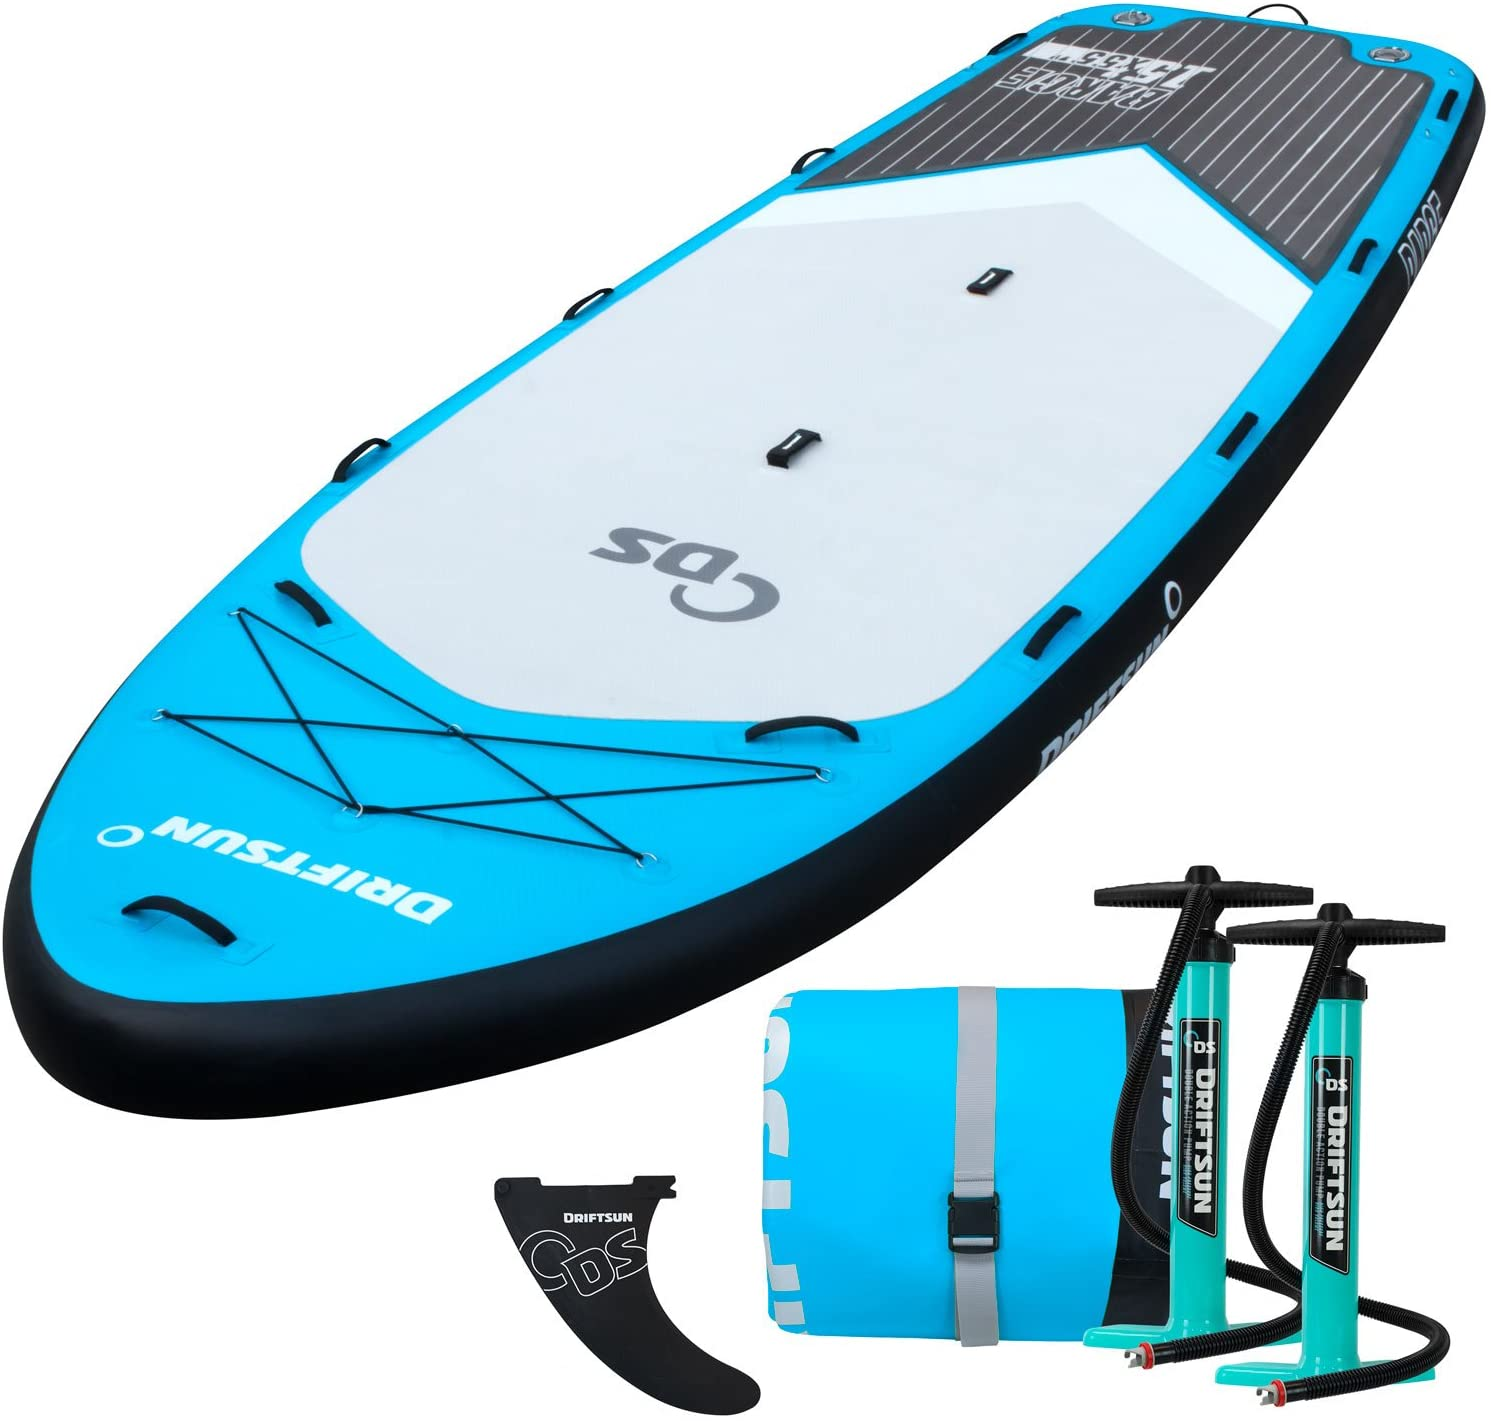 Driftsun Party Barge 15 Foot Inflatable Paddle Board, Large Multi-Person Inflatable Stand Up Paddle Boards